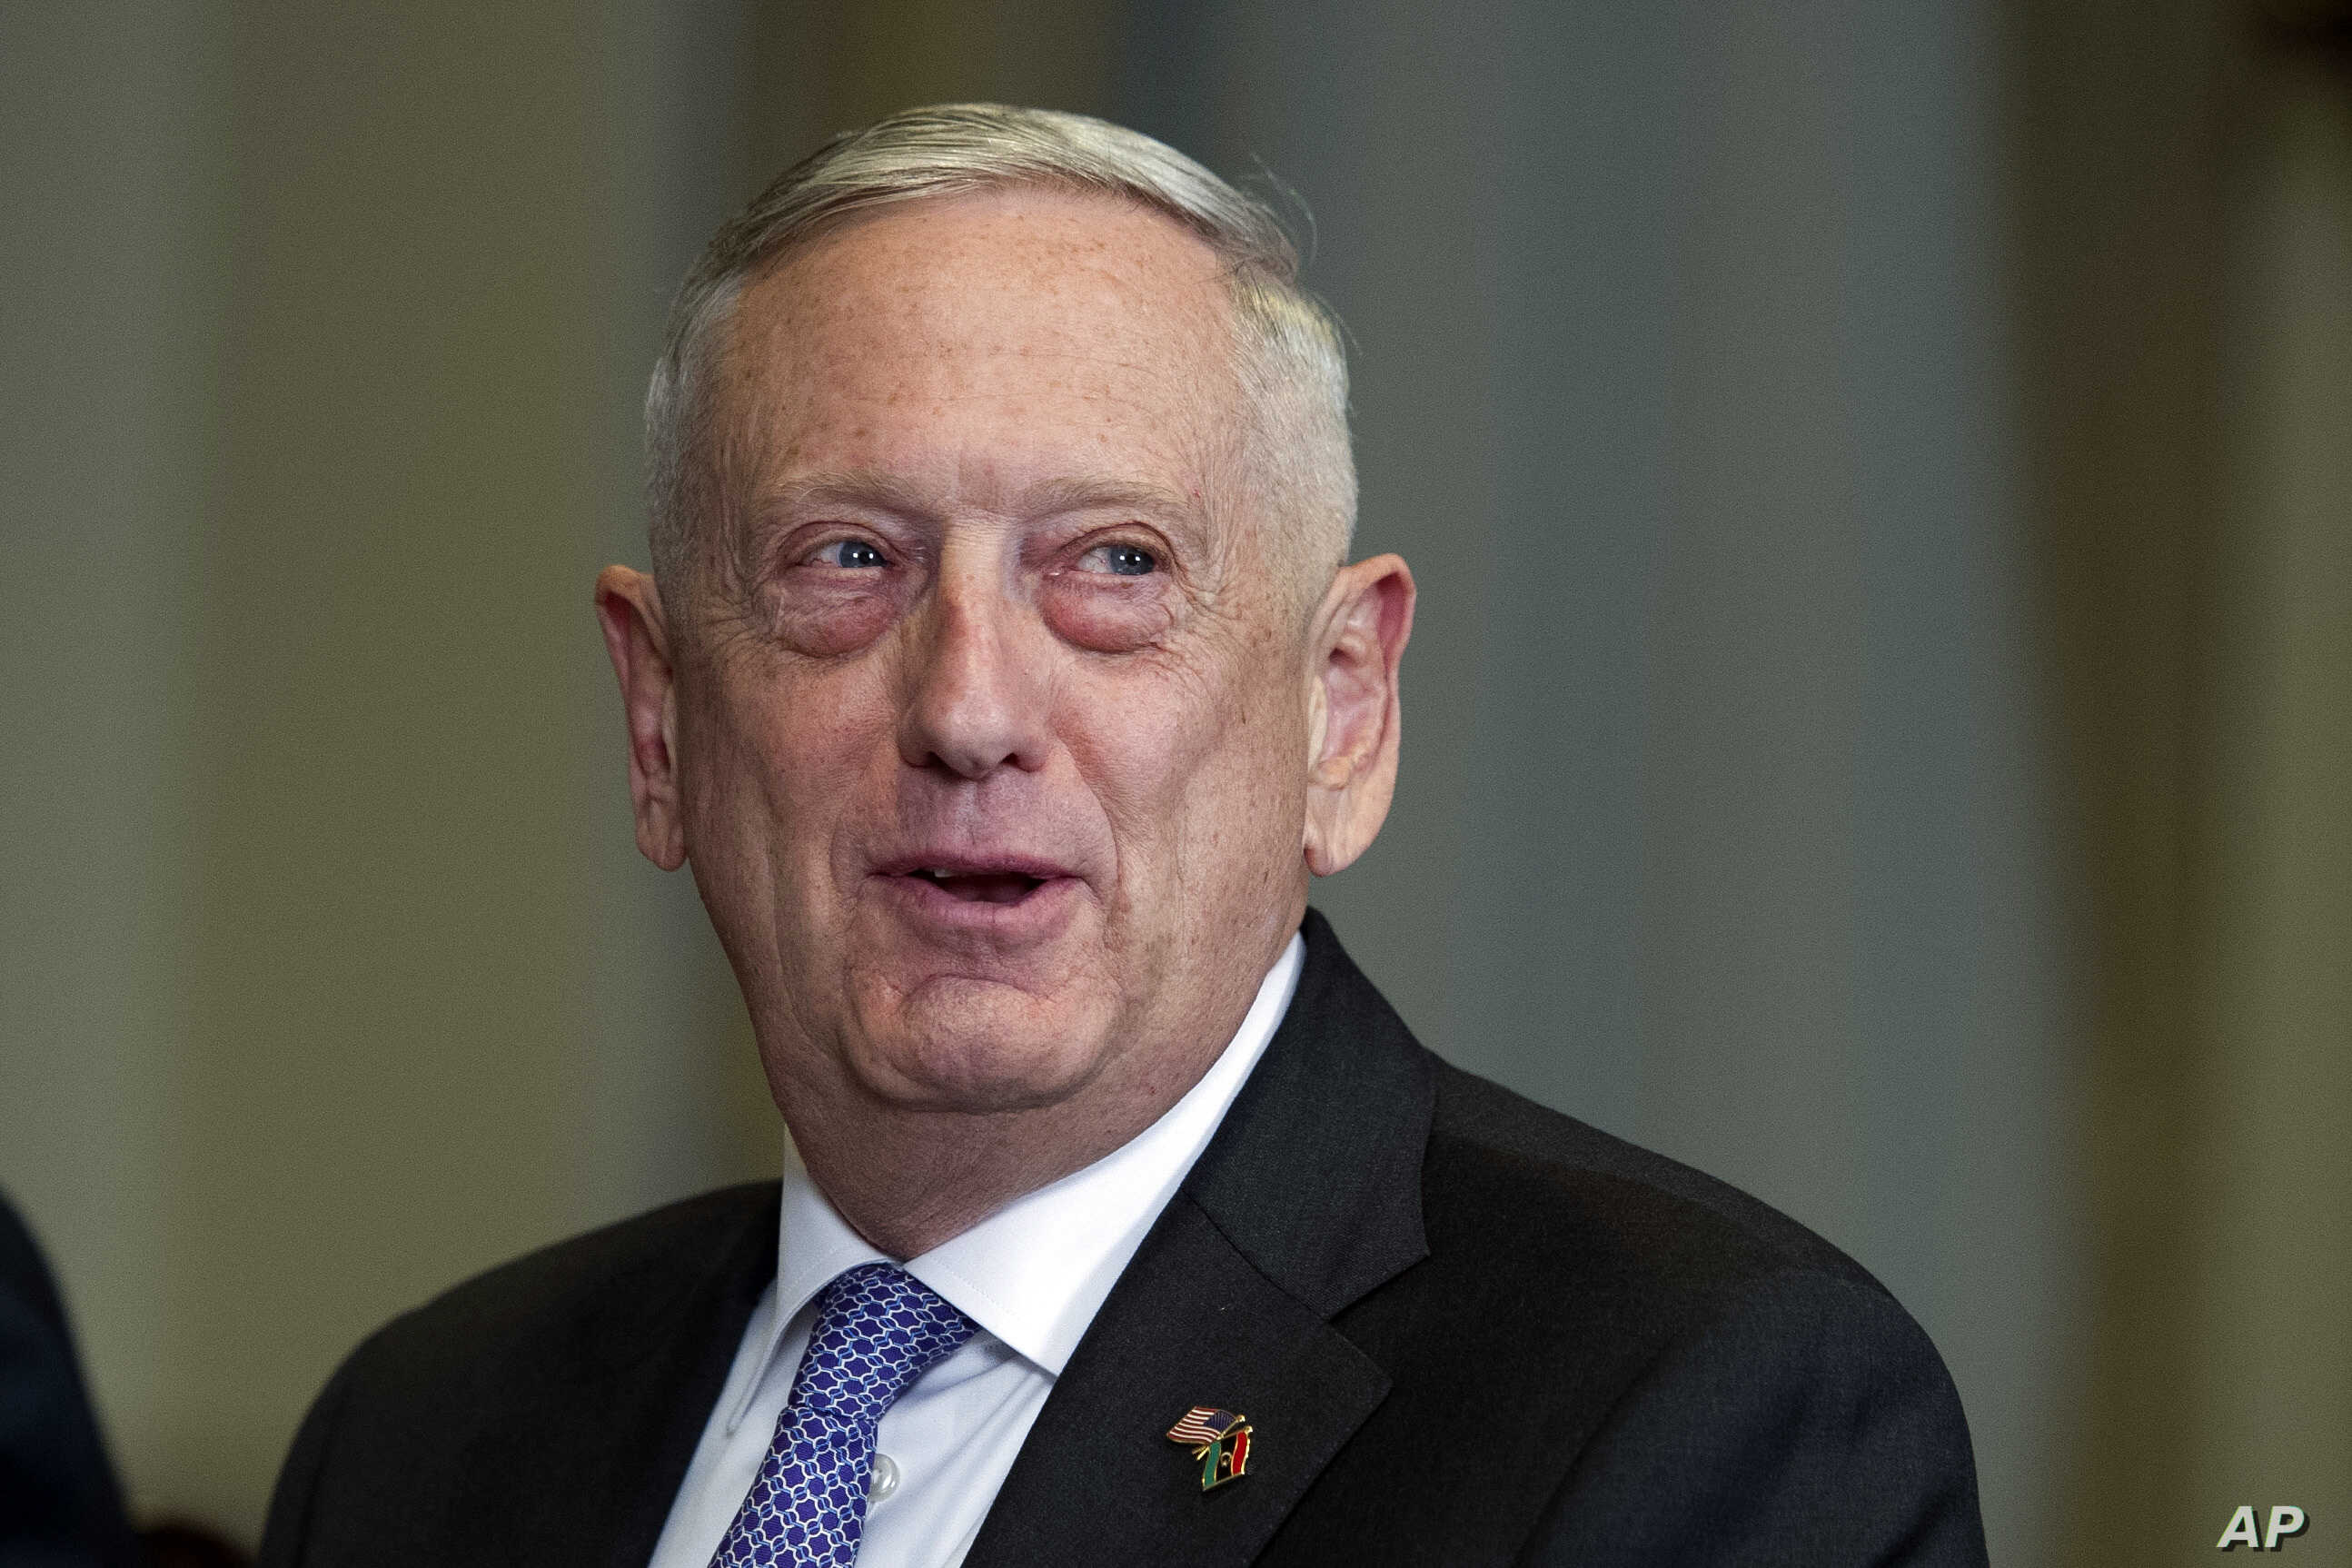 Defense Secretary Jim Mattis responds to a reporter's question during a meeting with Libyan Prime Minister Fayez Serraj at the Pentagon, Nov. 30, 2017.